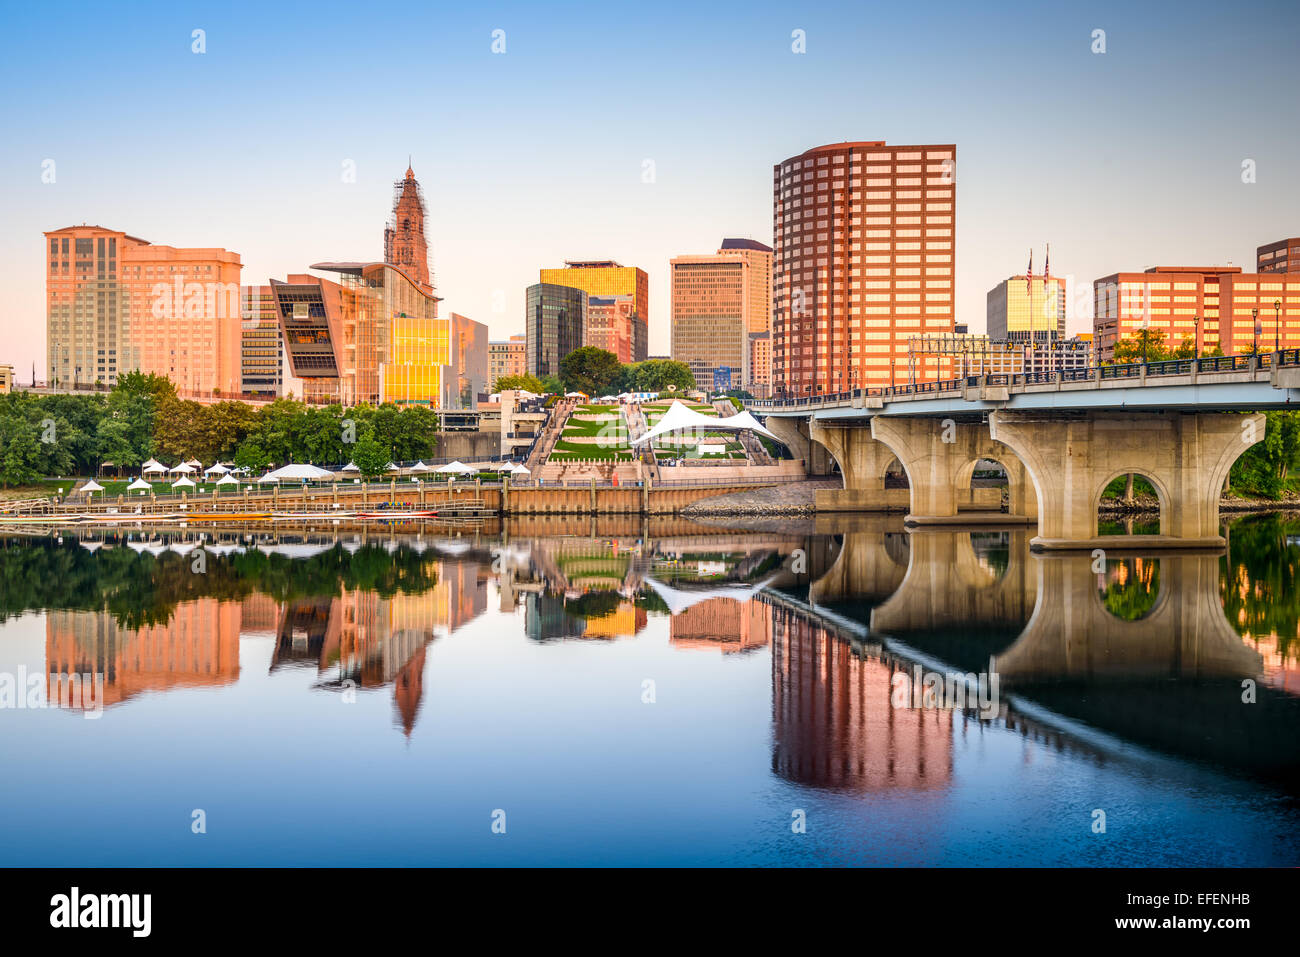 Hartford, Connecticut, USA downtown city skyline on the river. - Stock Image